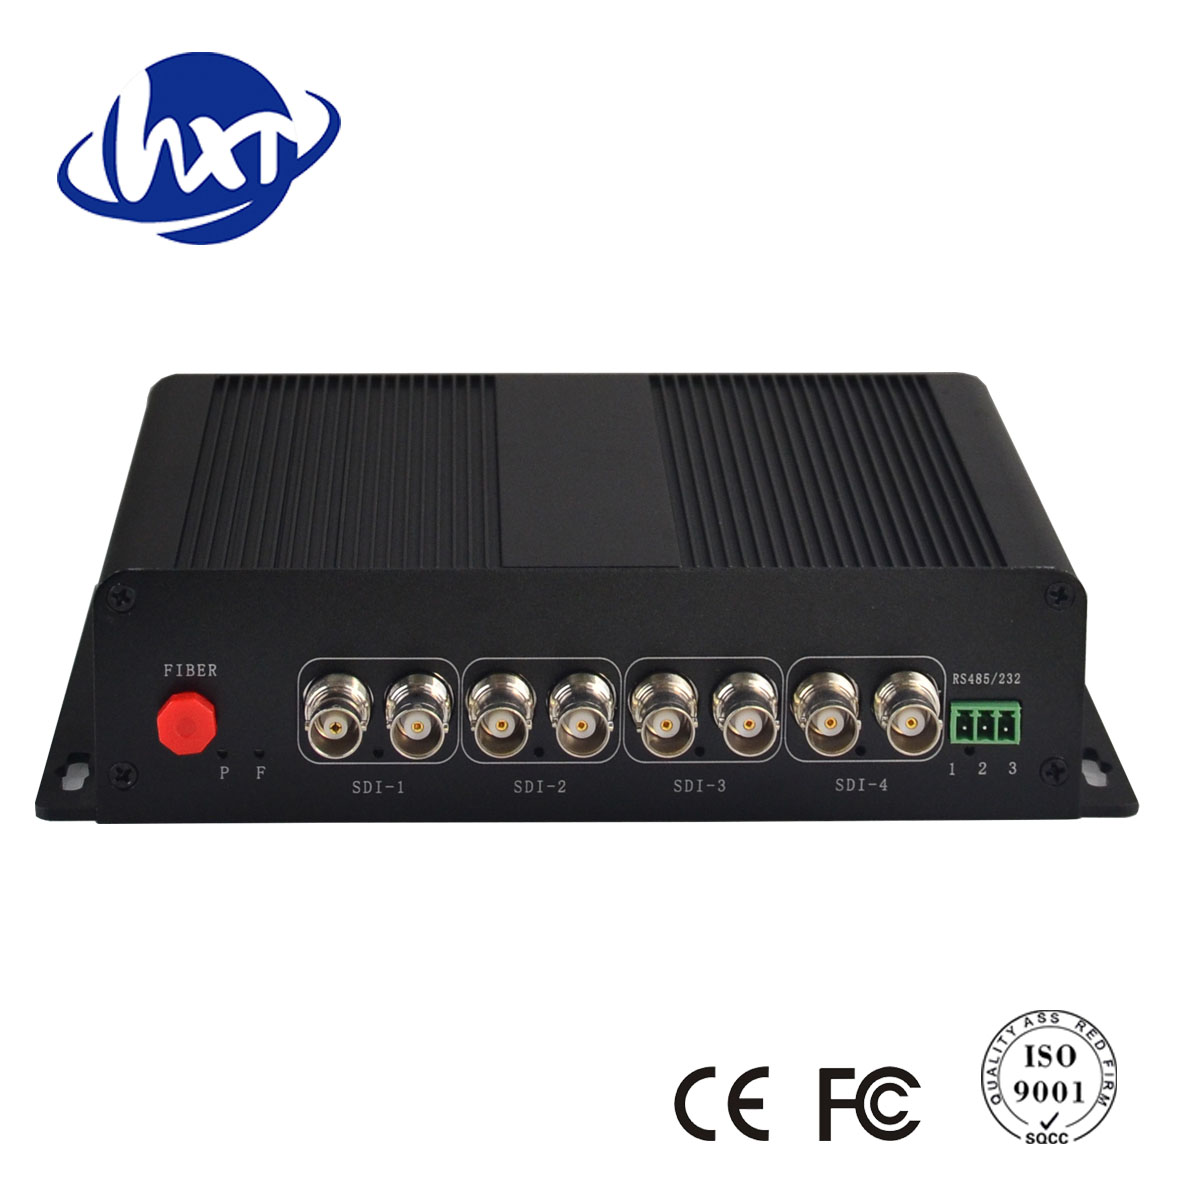 1080p 3g hd sdi fiber optical transmitter receiver 4 channel hd sdi converter 1080p buy 1080p 3g hd sdi fiber optical transmitter receiver,1080p 4  guantai 2ch audio over fc fiber optic